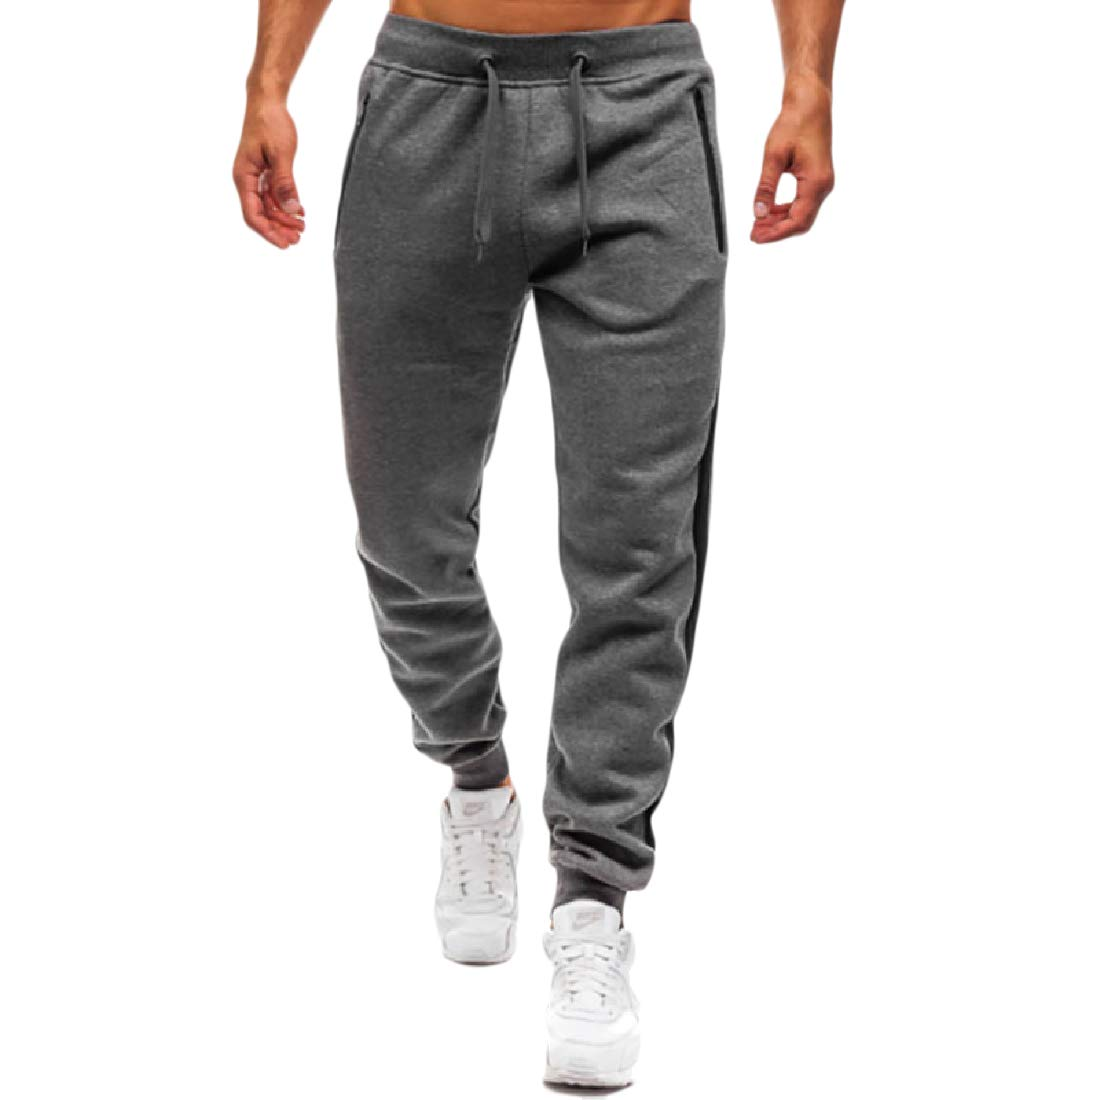 Abetteric Mens Drawstring Athletic Casual Loose Striped Full Zip Sweatpant